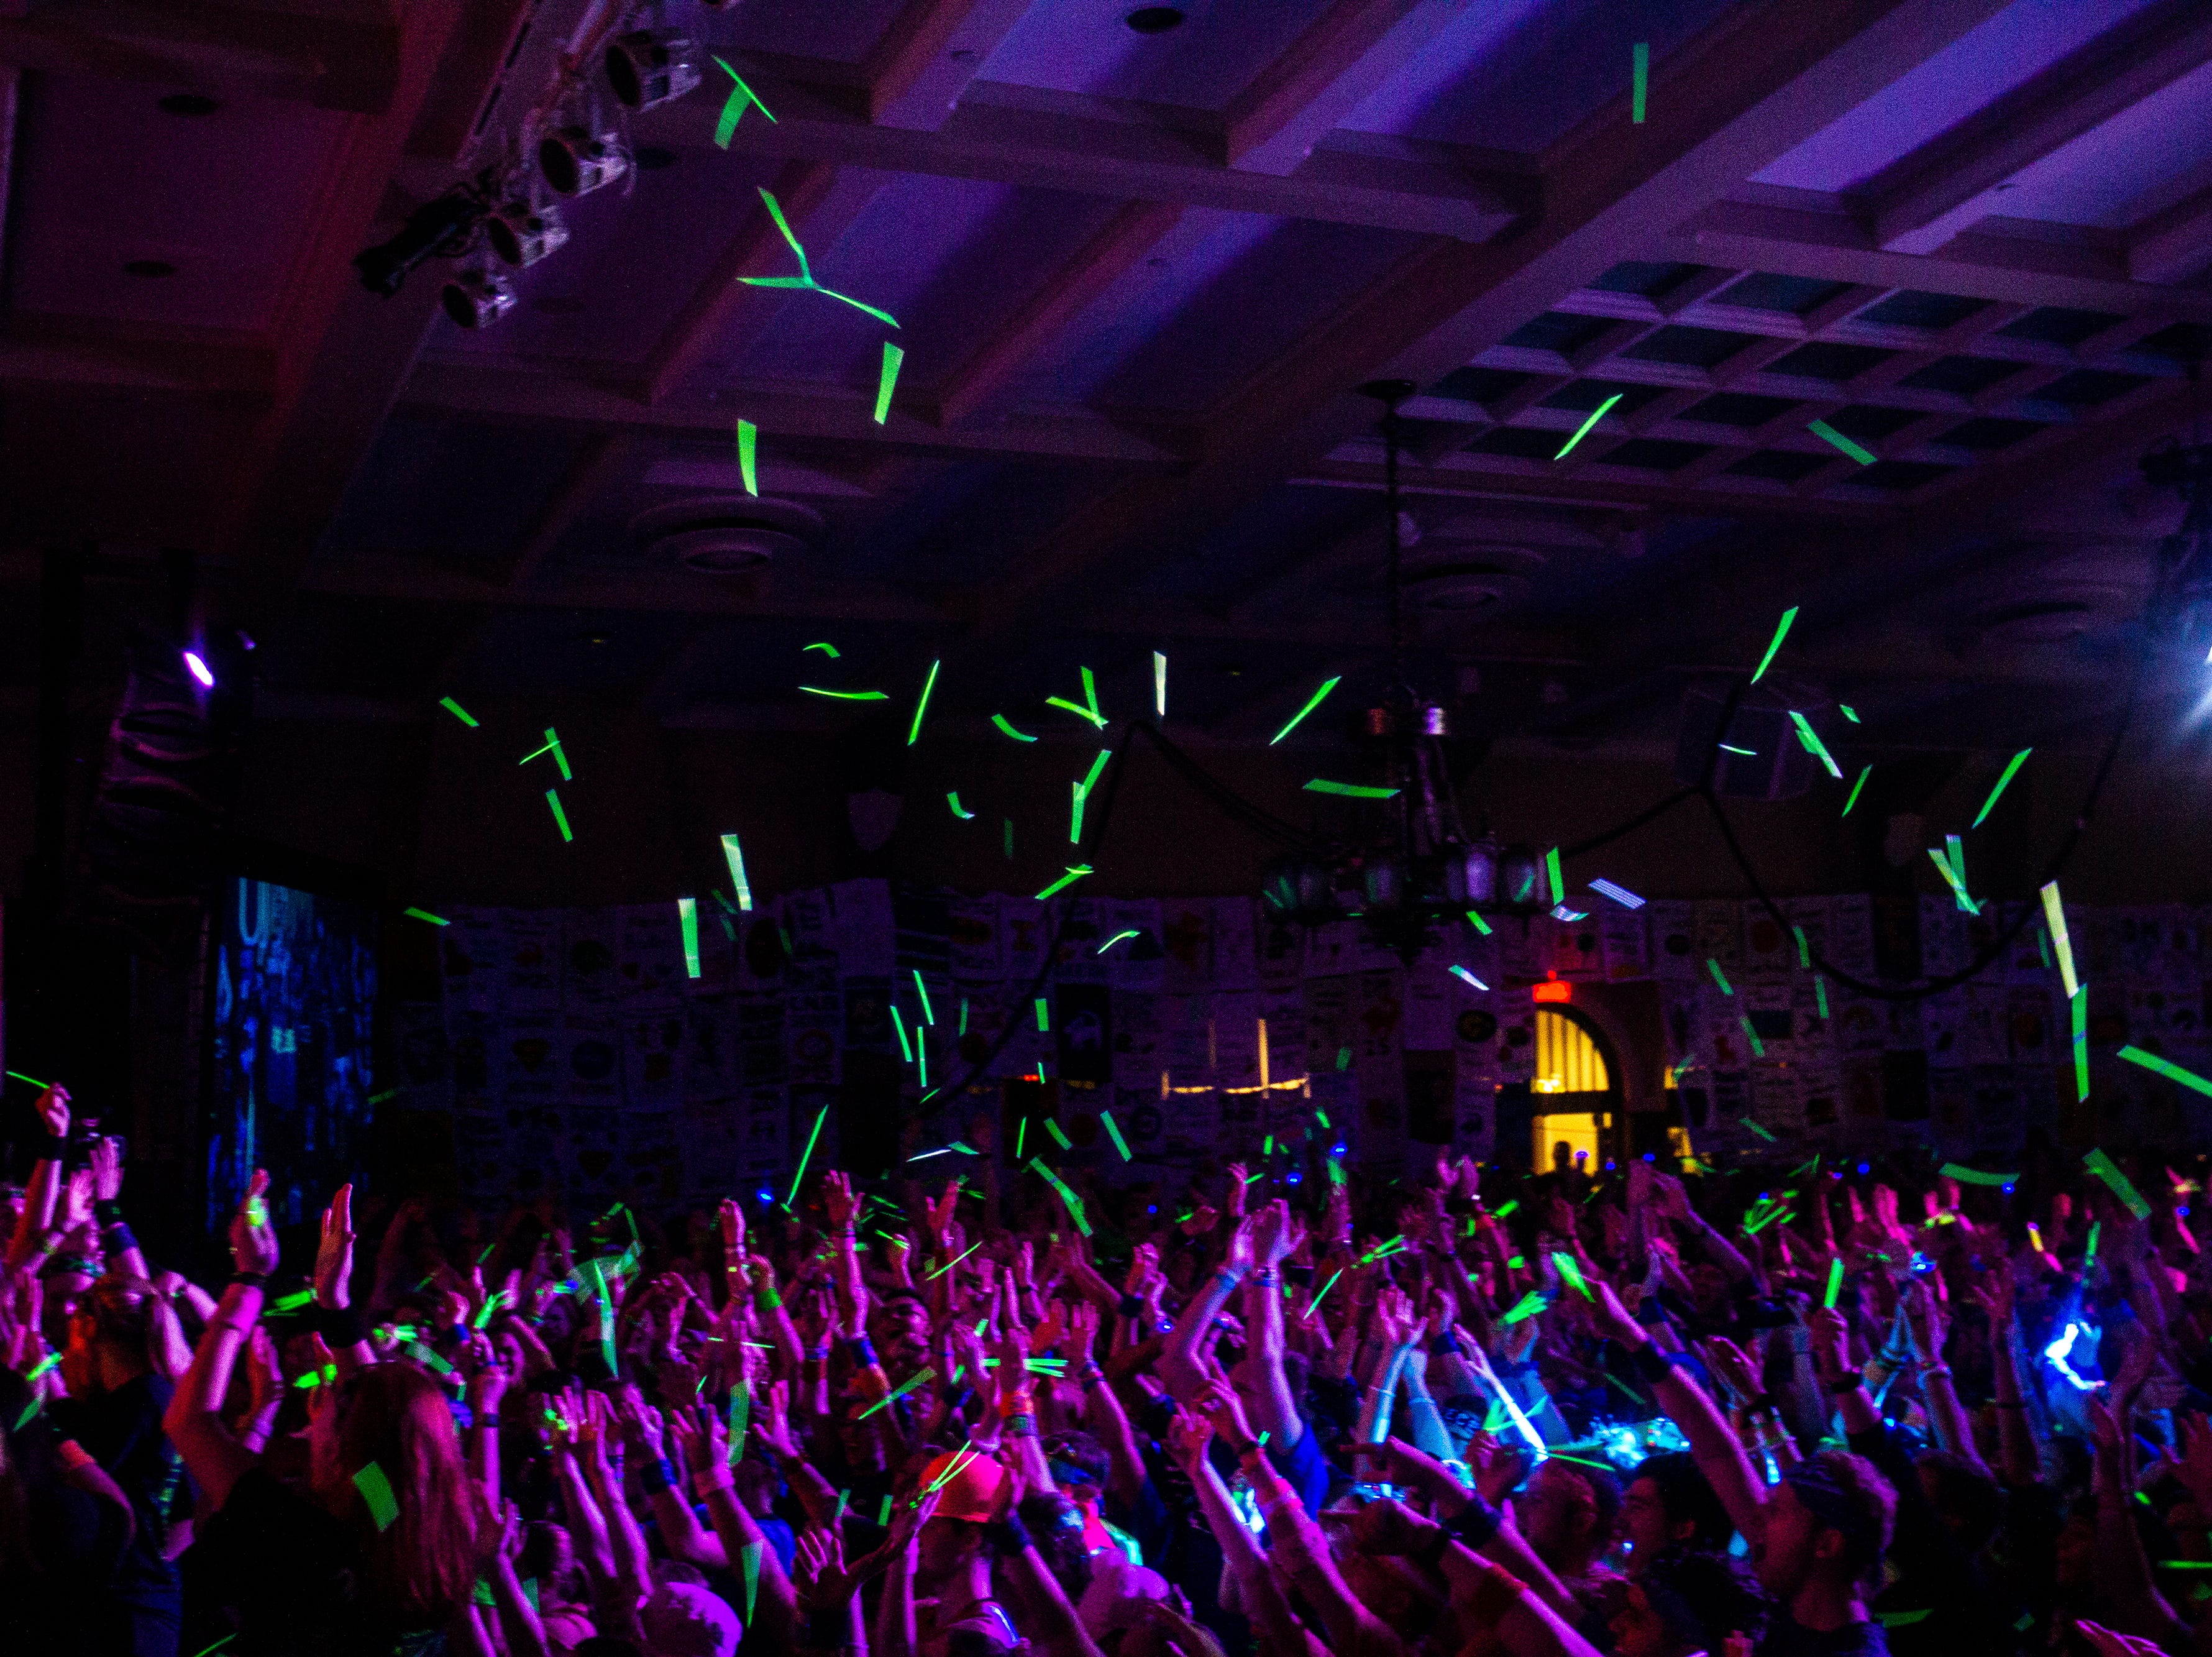 Students toss glow sticks in the air during the University of Iowa Dance Marathon 25 on Saturday, Feb. 2, 2019, at the Iowa Memorial Union in Iowa City, Iowa.